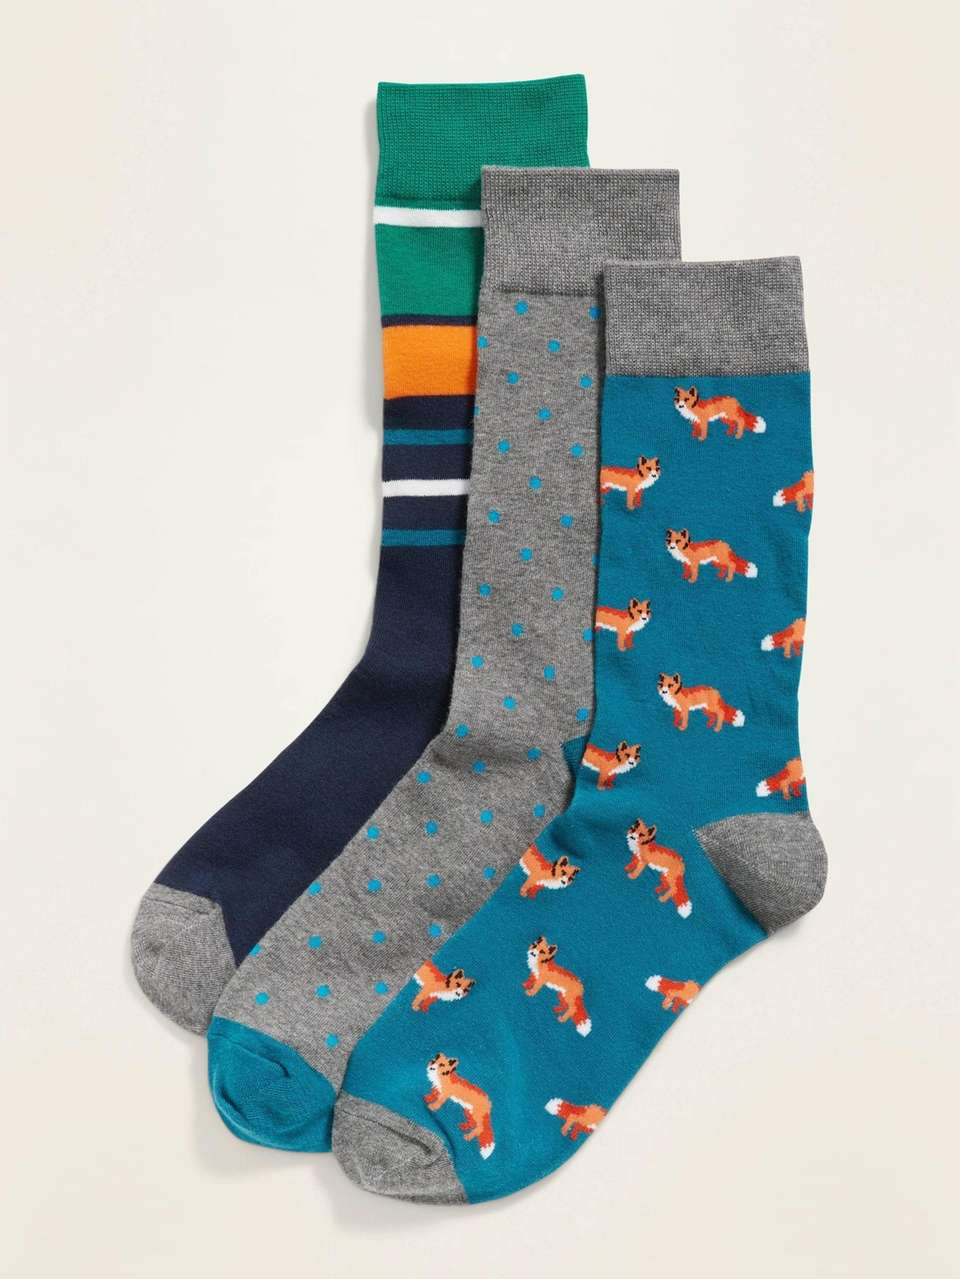 Slip into a pair of socks that show